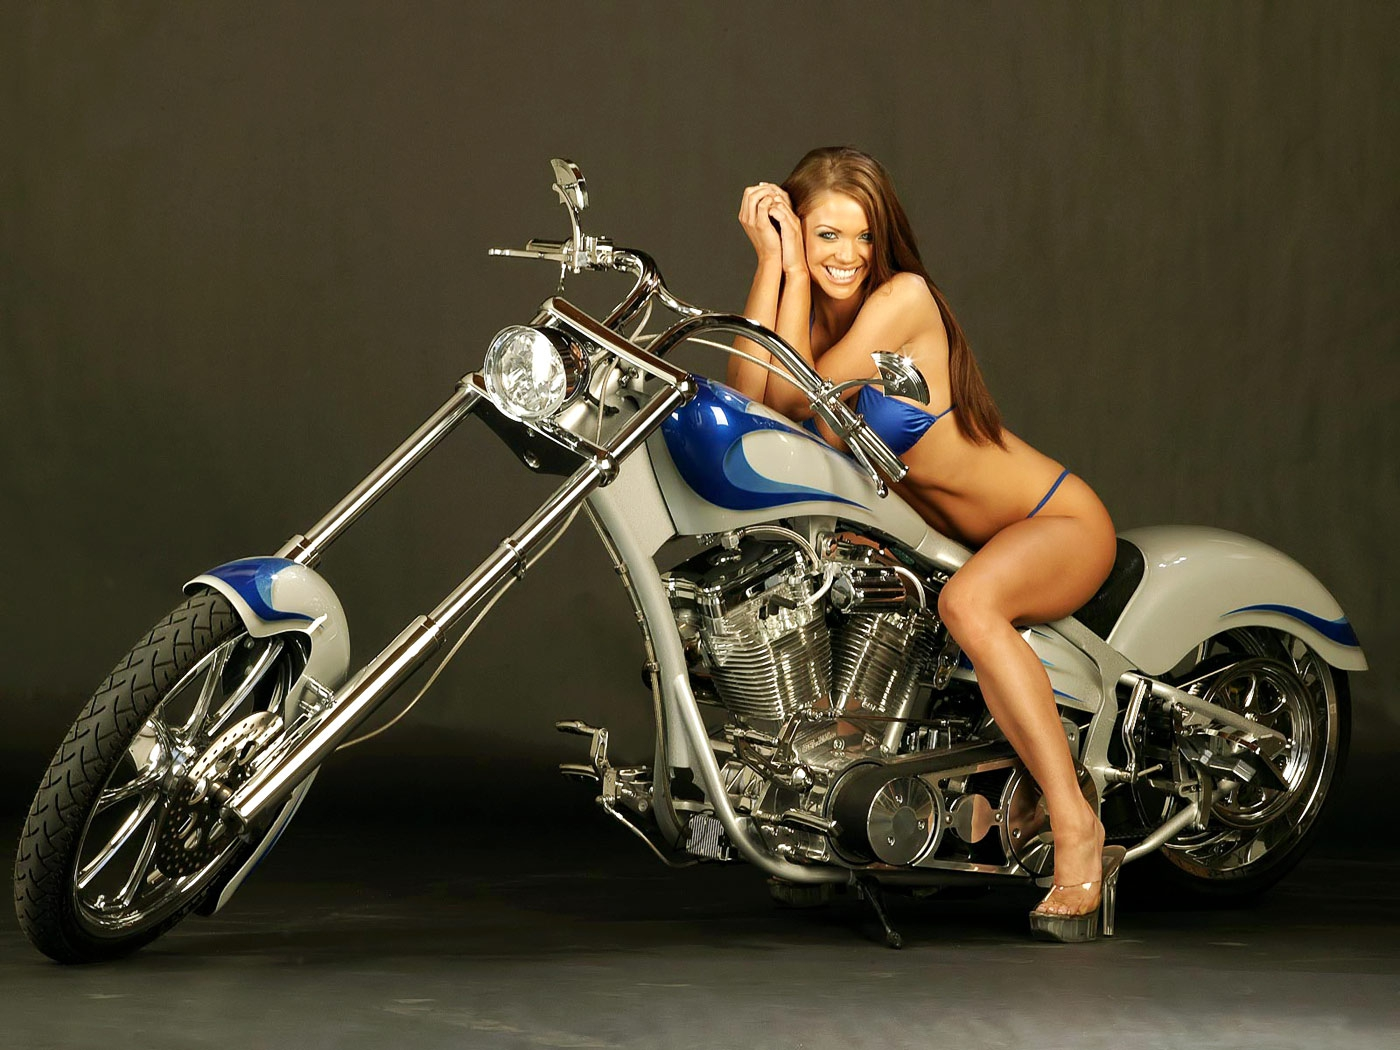 Pictures women on motorcycles sexy pics